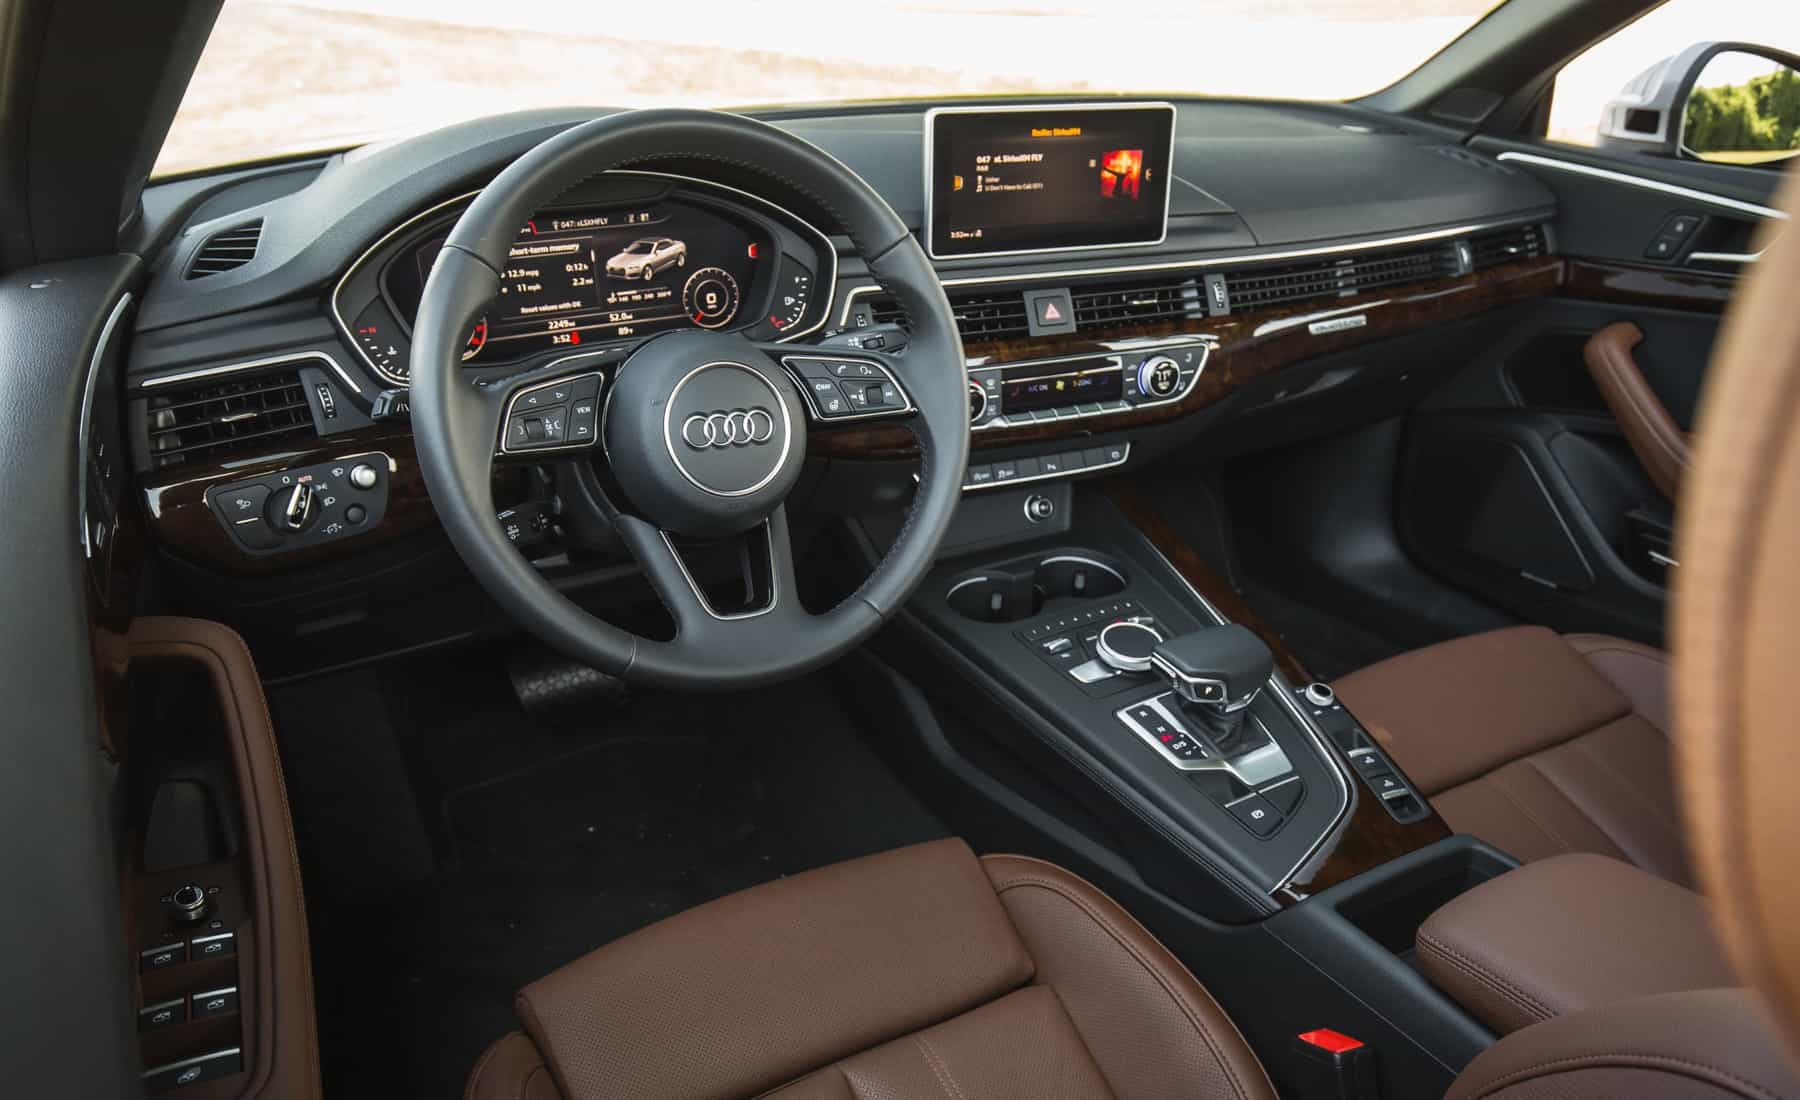 2018 Audi A5 Cabriolet Interior Driver Cockpit And Dashboard (Photo 22 of 45)